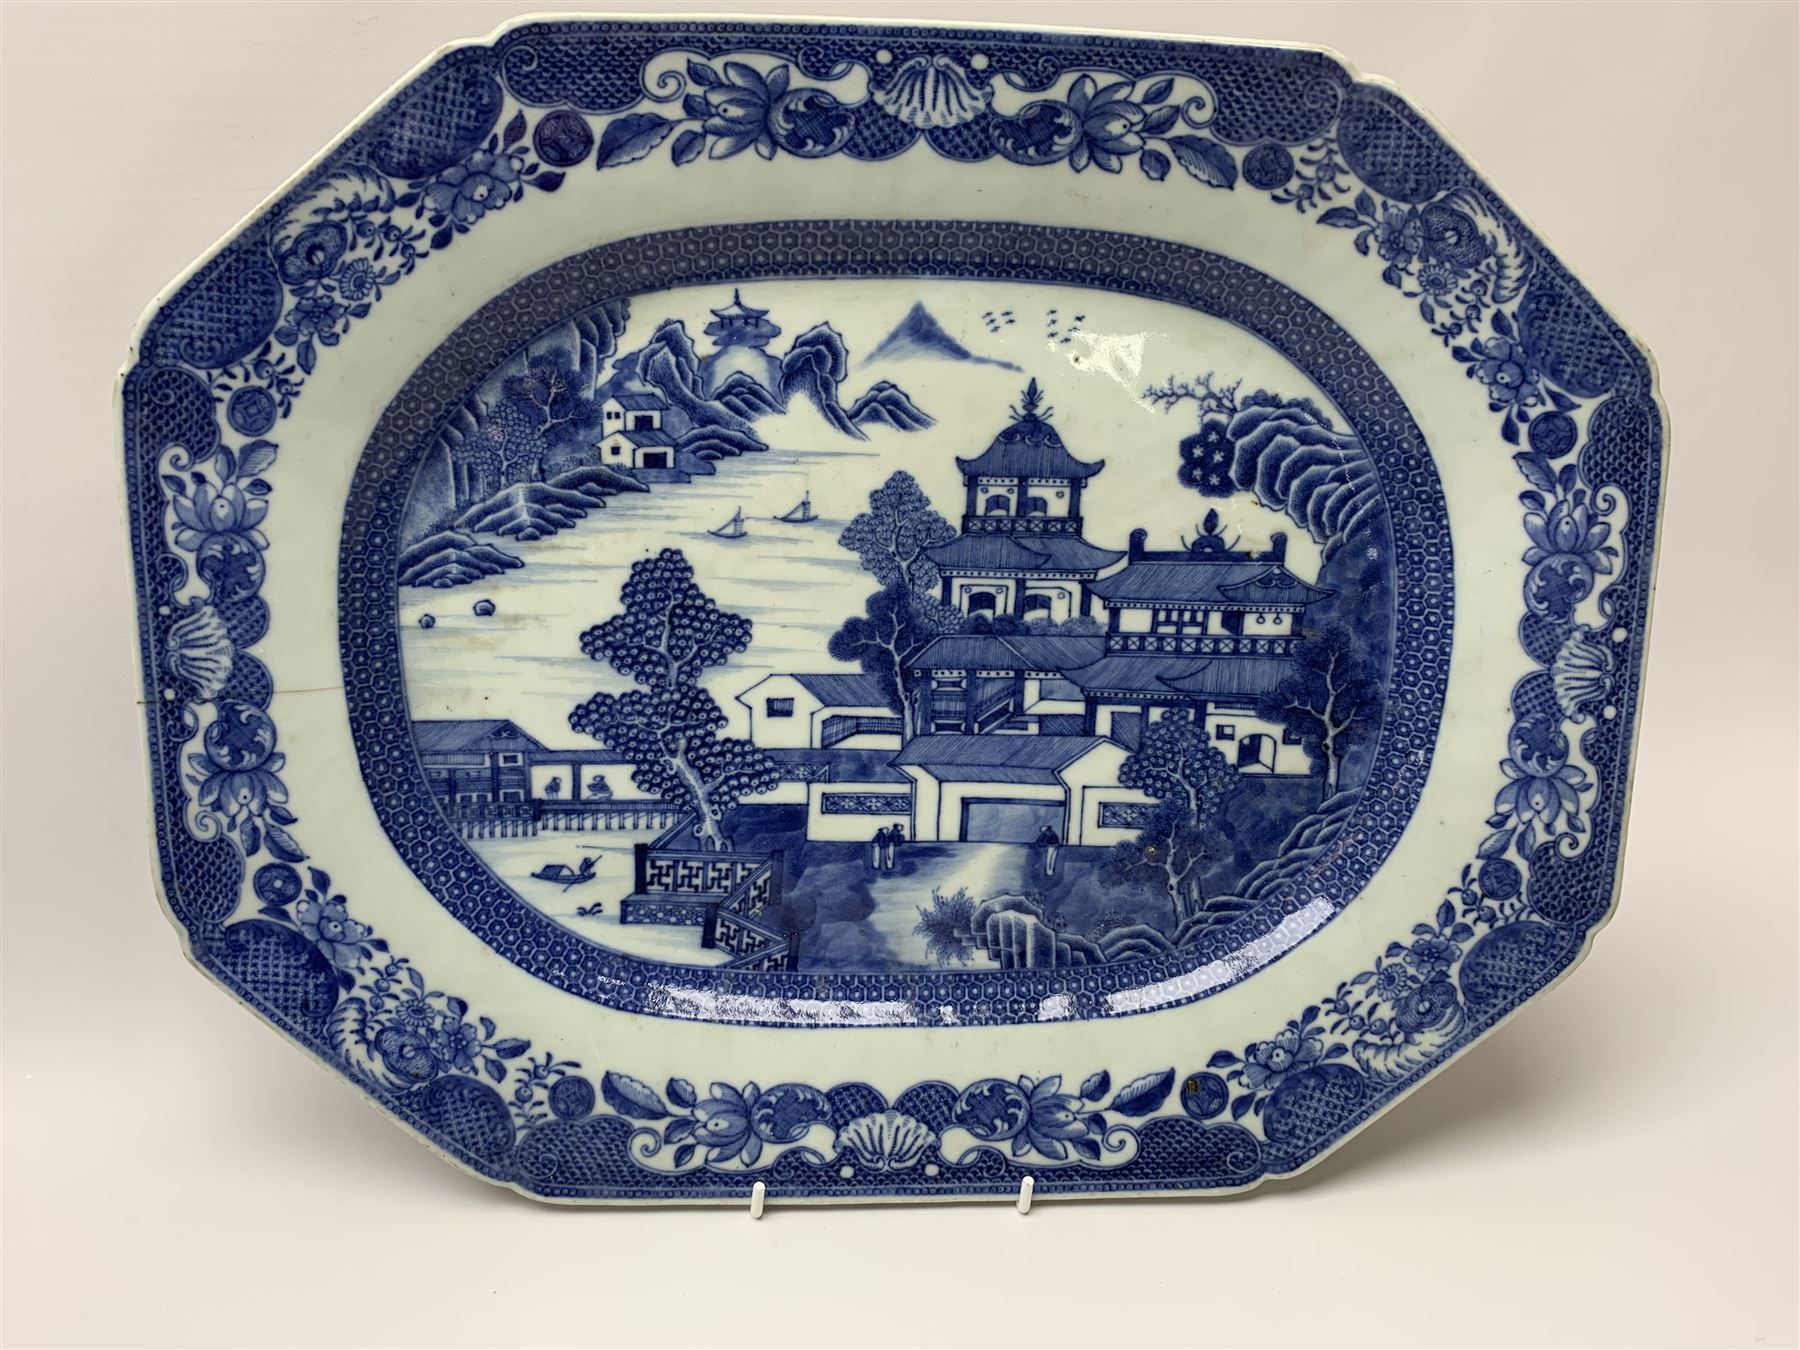 Late 18th/early 19th century Chinese export blue and white forty seven piece part dinner service - Image 3 of 20